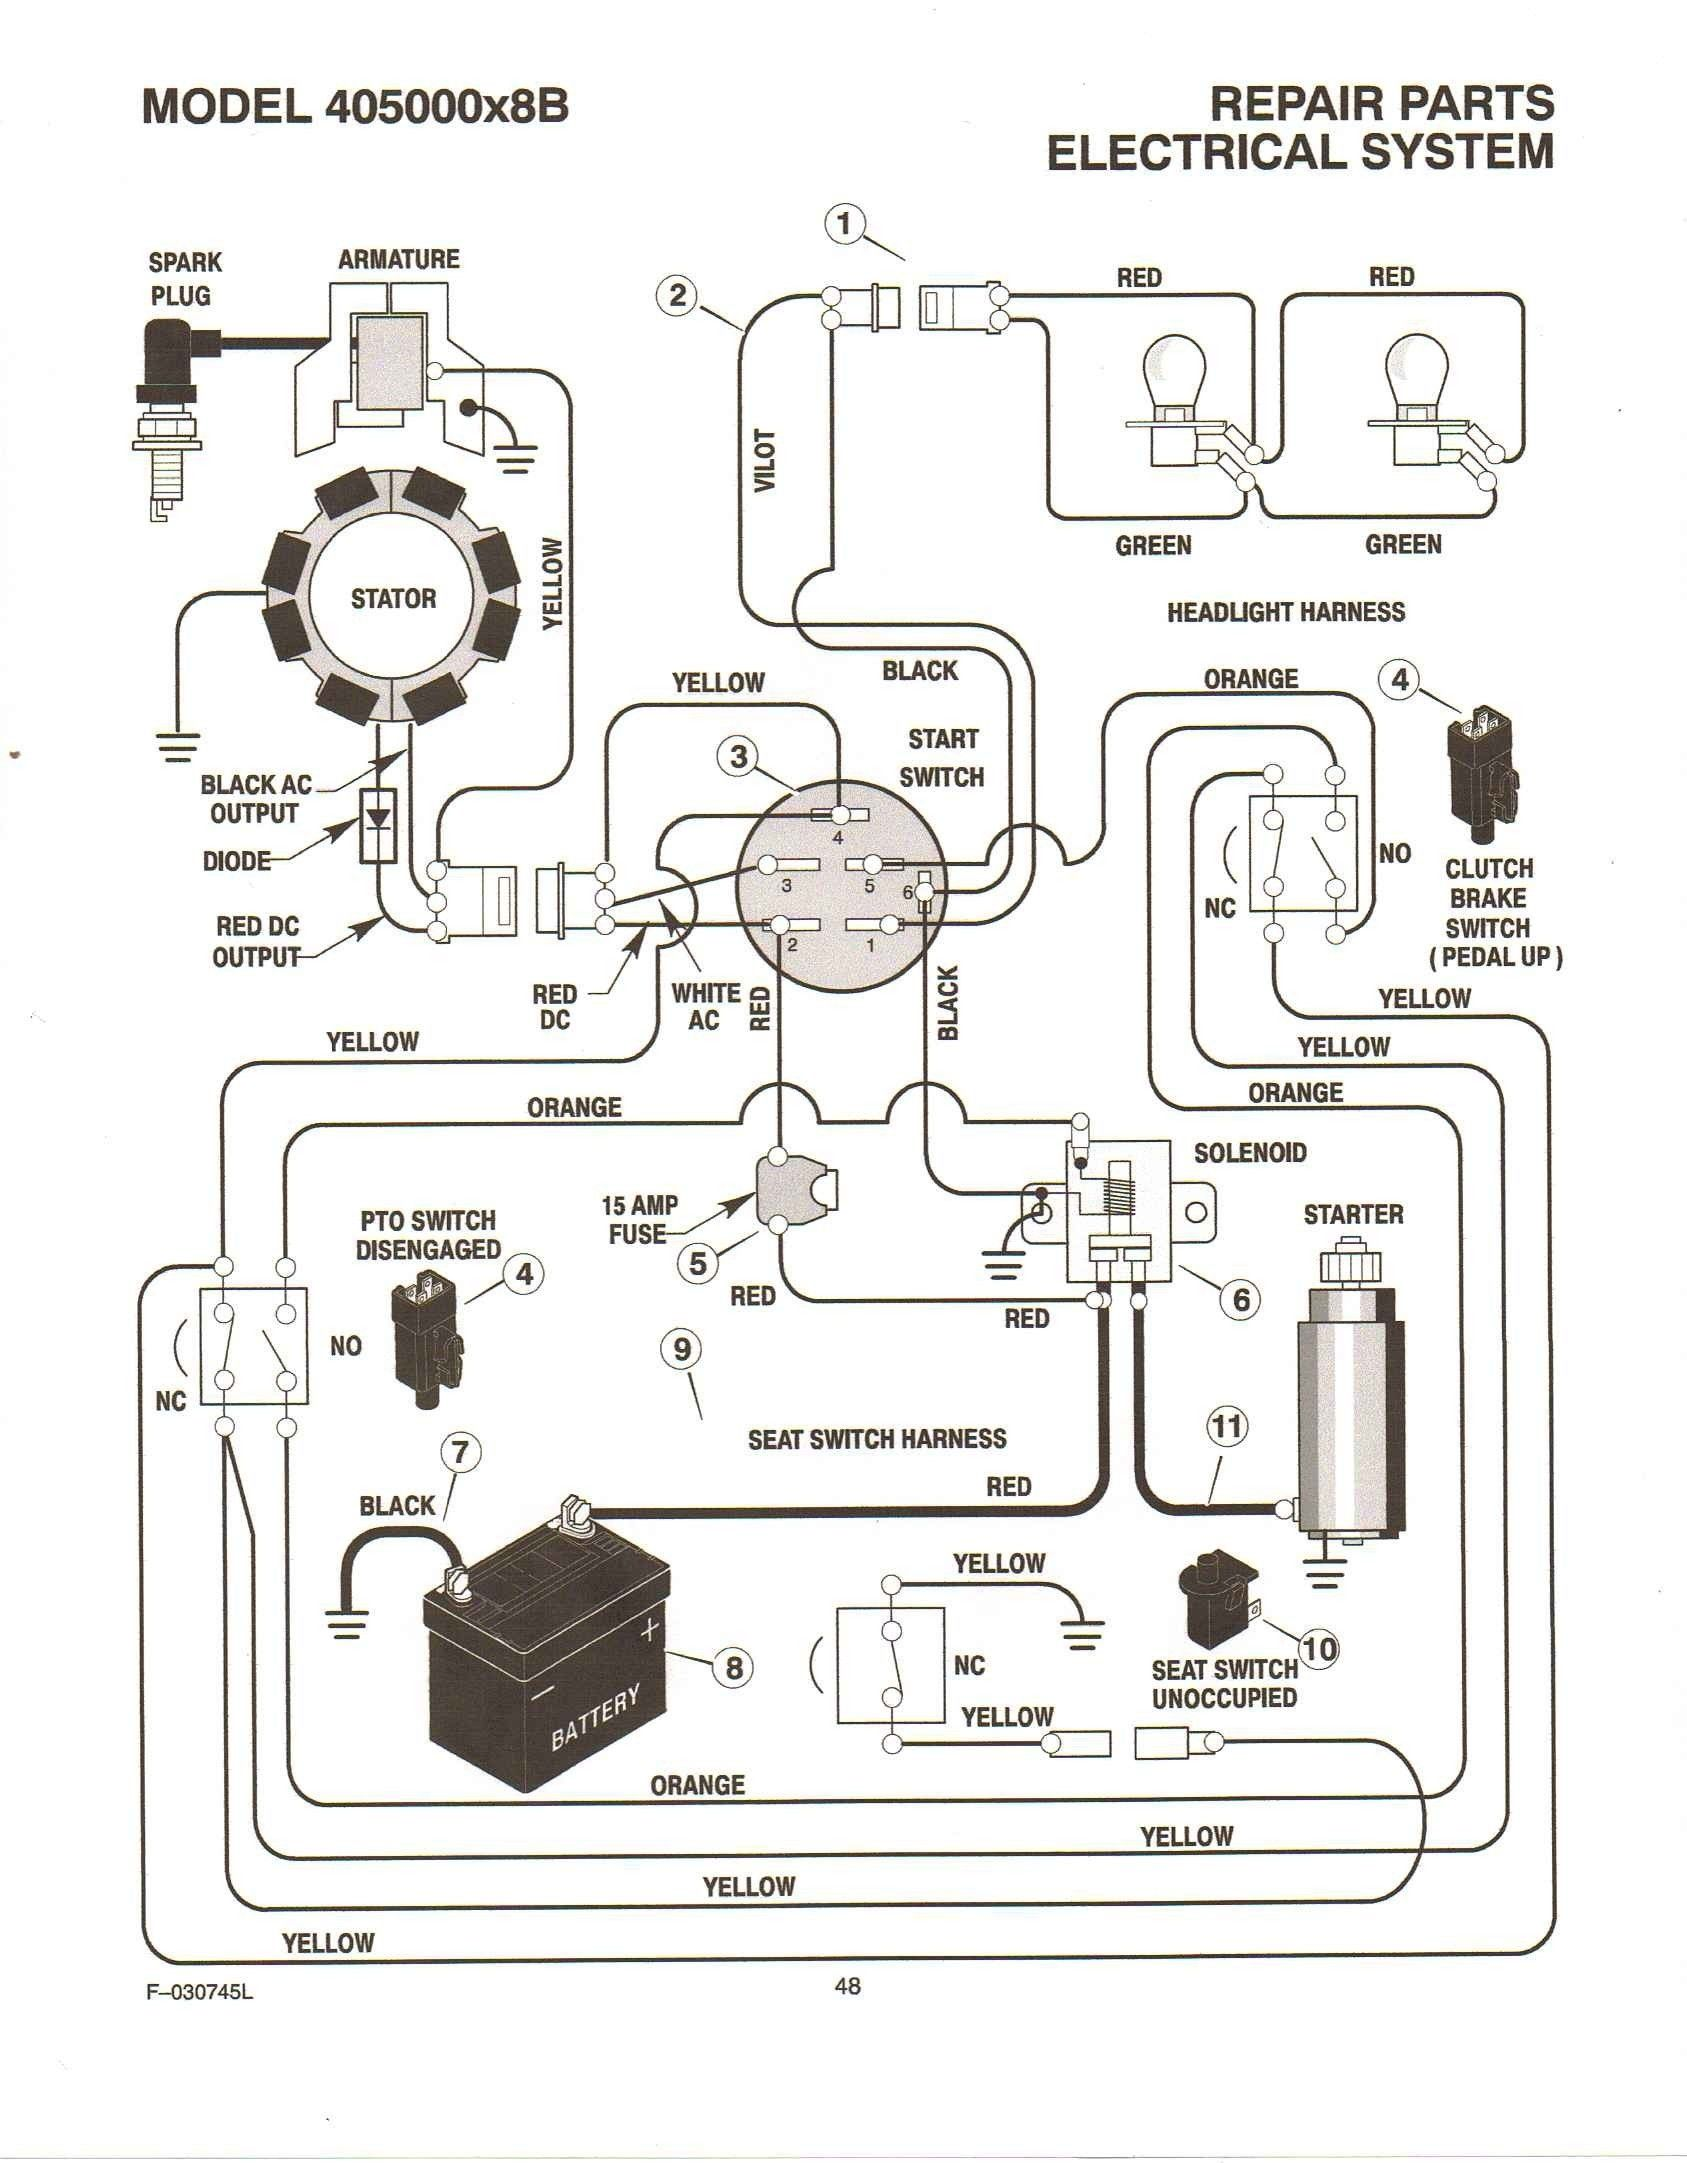 20 Hp Briggs And Stratton Engine Diagram Electrical Diagram Diagram Briggs Stratton